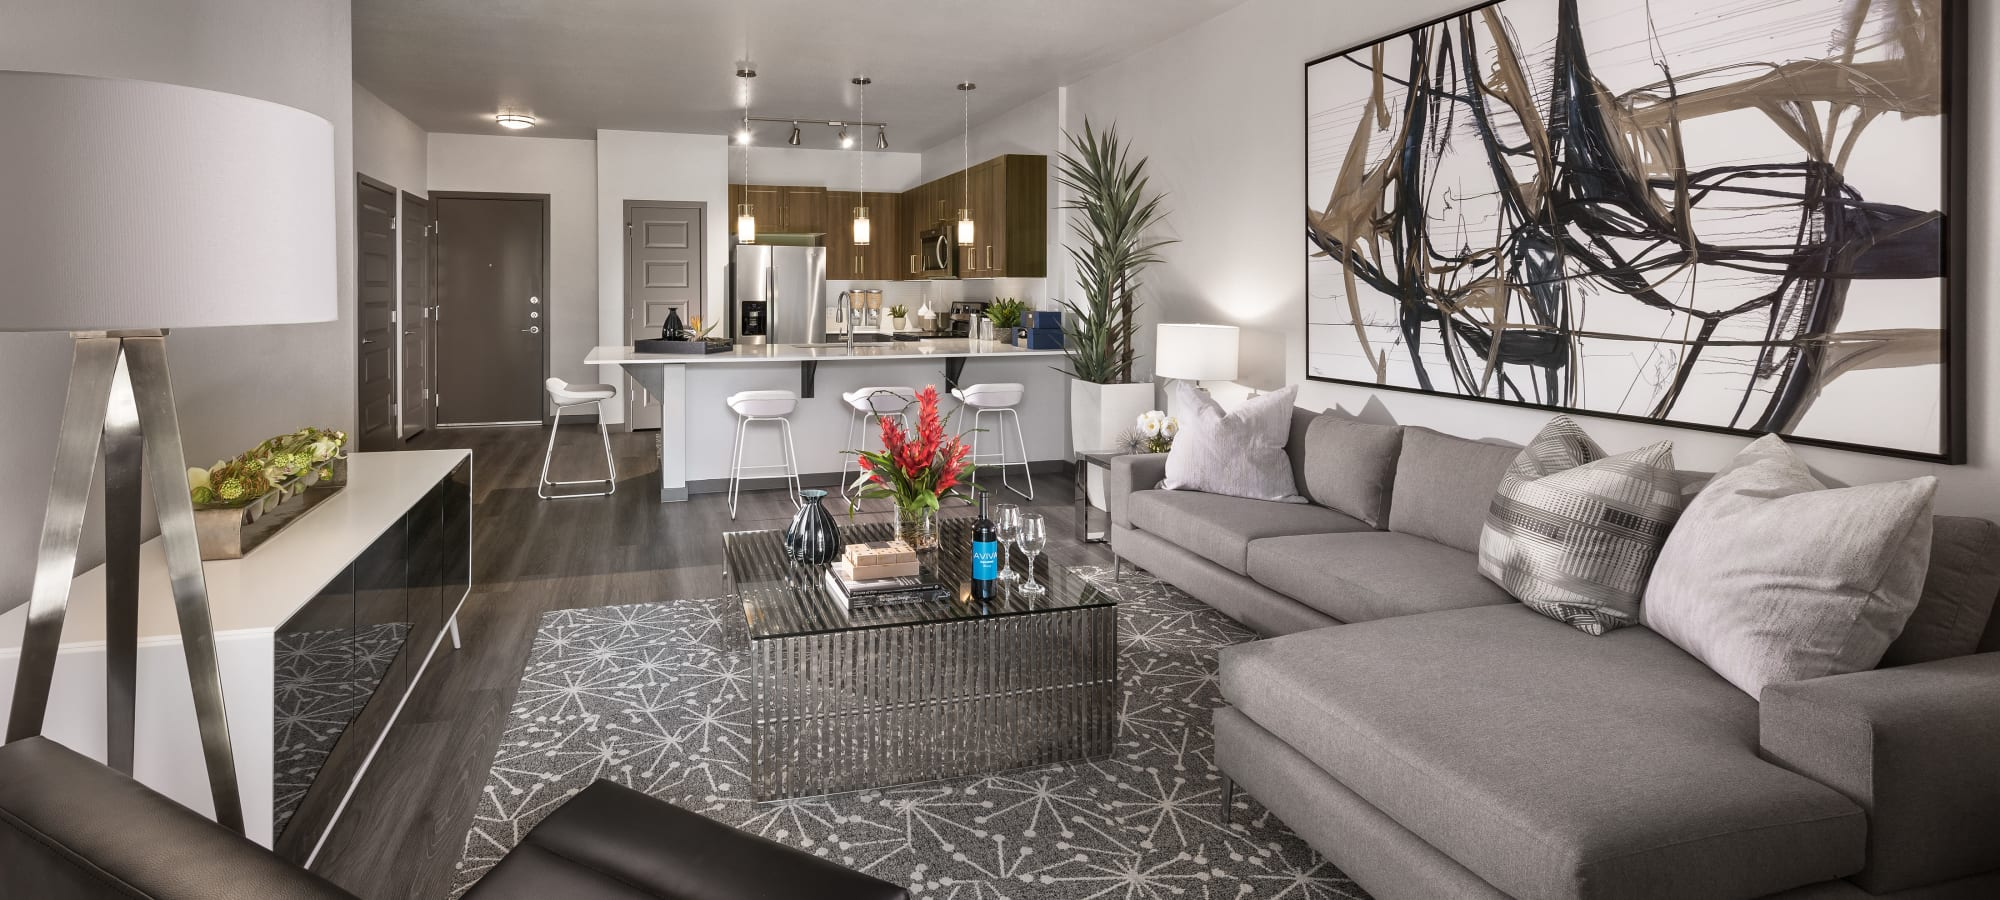 Spacious living room in model home at Aviva in Mesa, Arizona